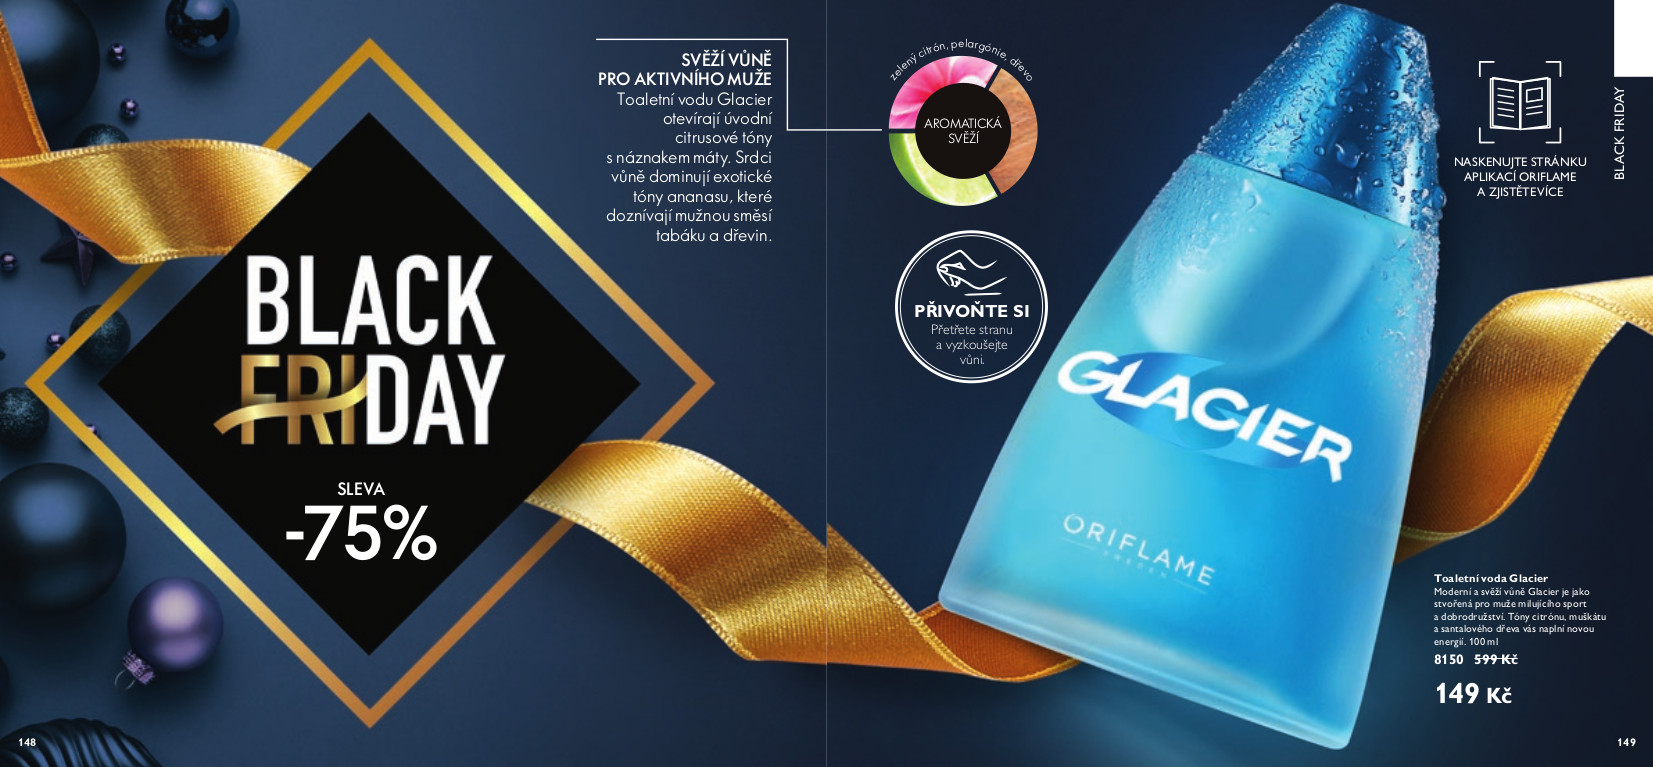 ORIFLAME black friday